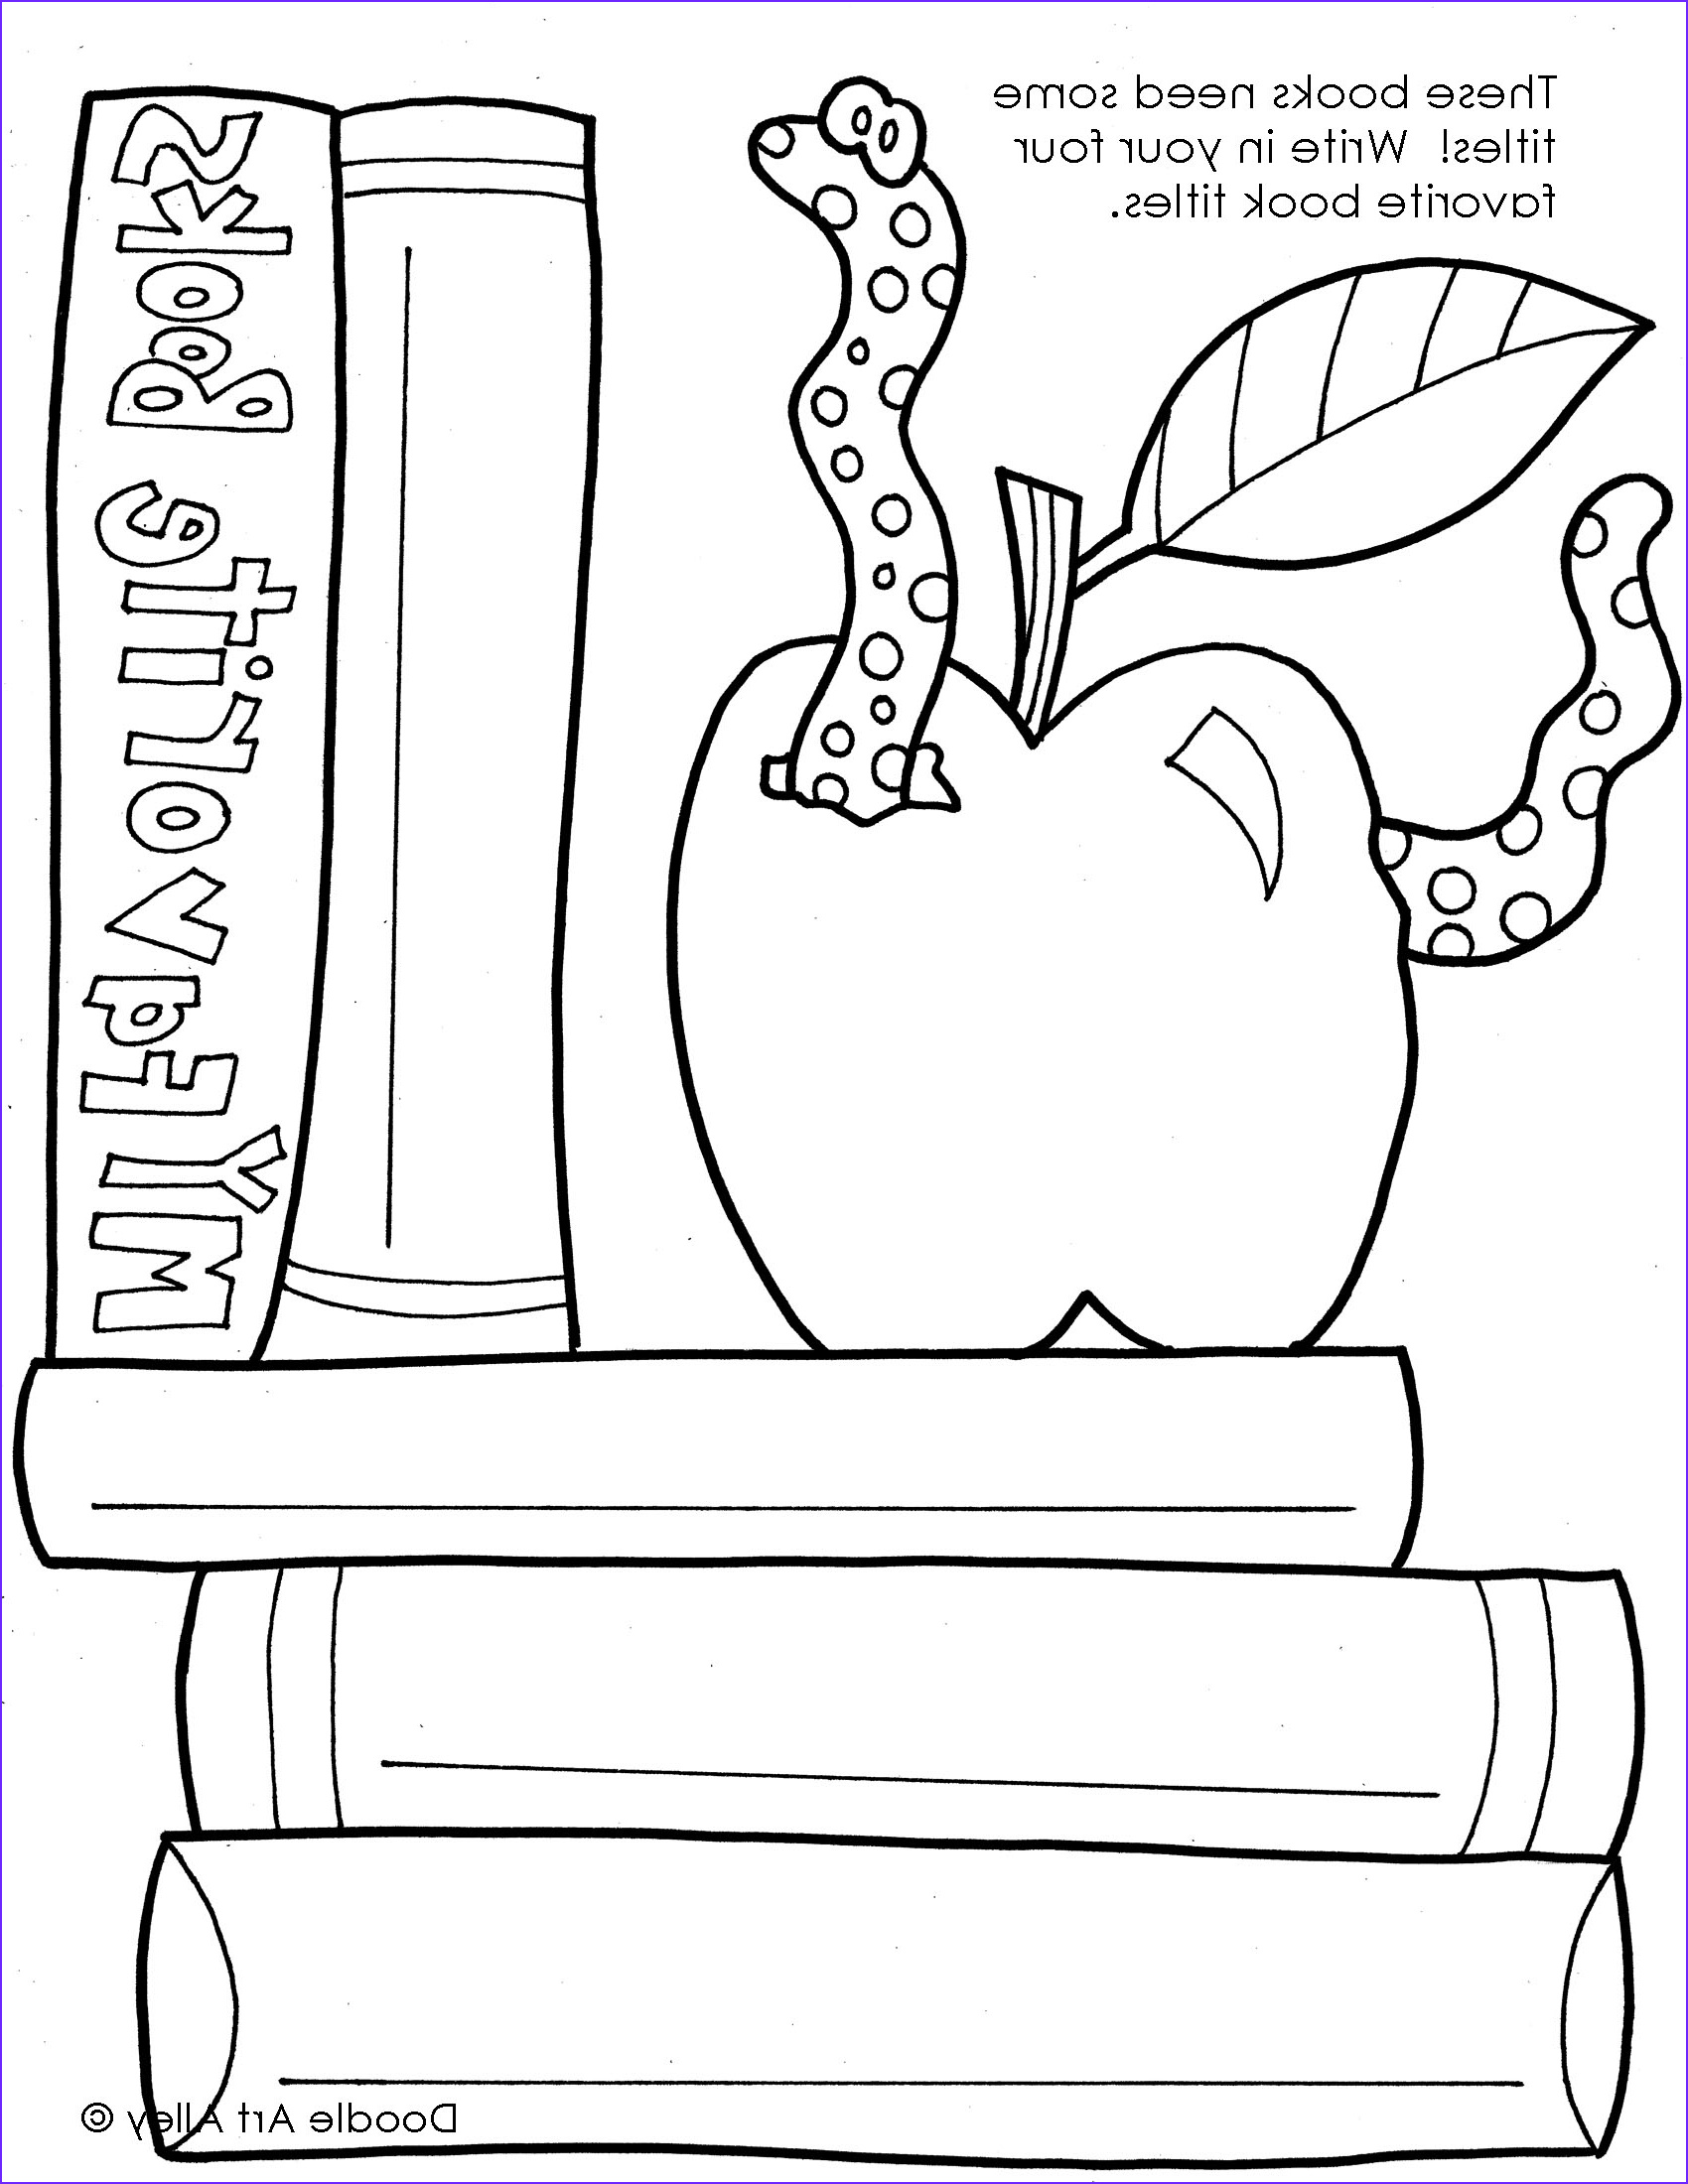 Coloring Story Book Inspirational Images Library Coloring Pages Classroom Doodles